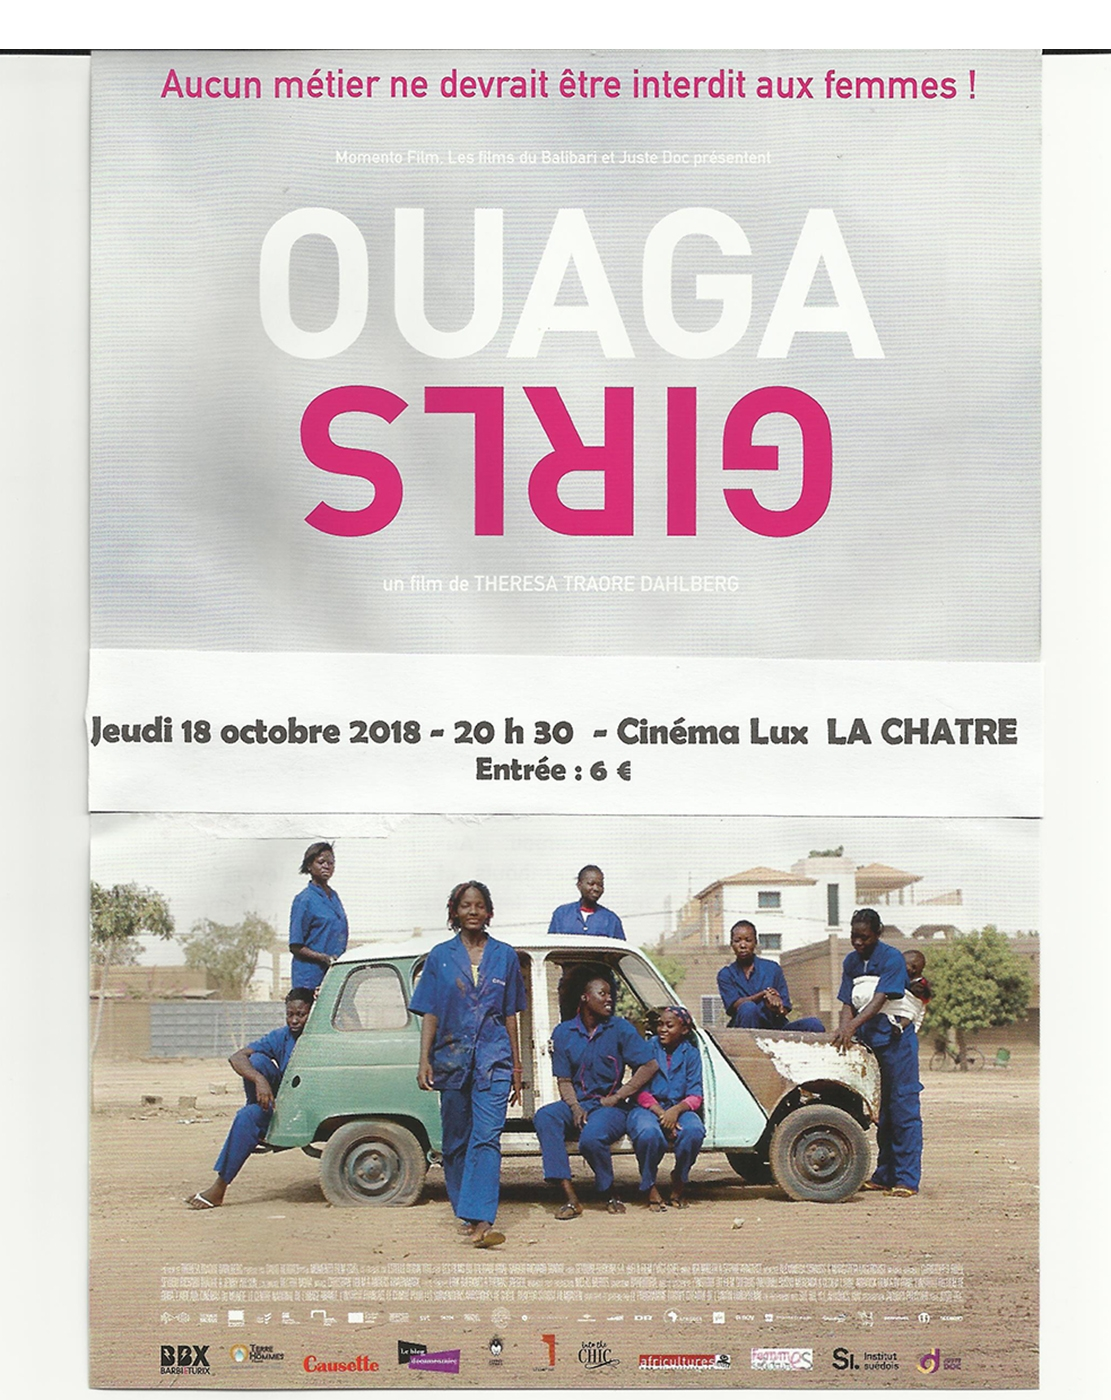 OUAGA GIRLS_ 18 octobre